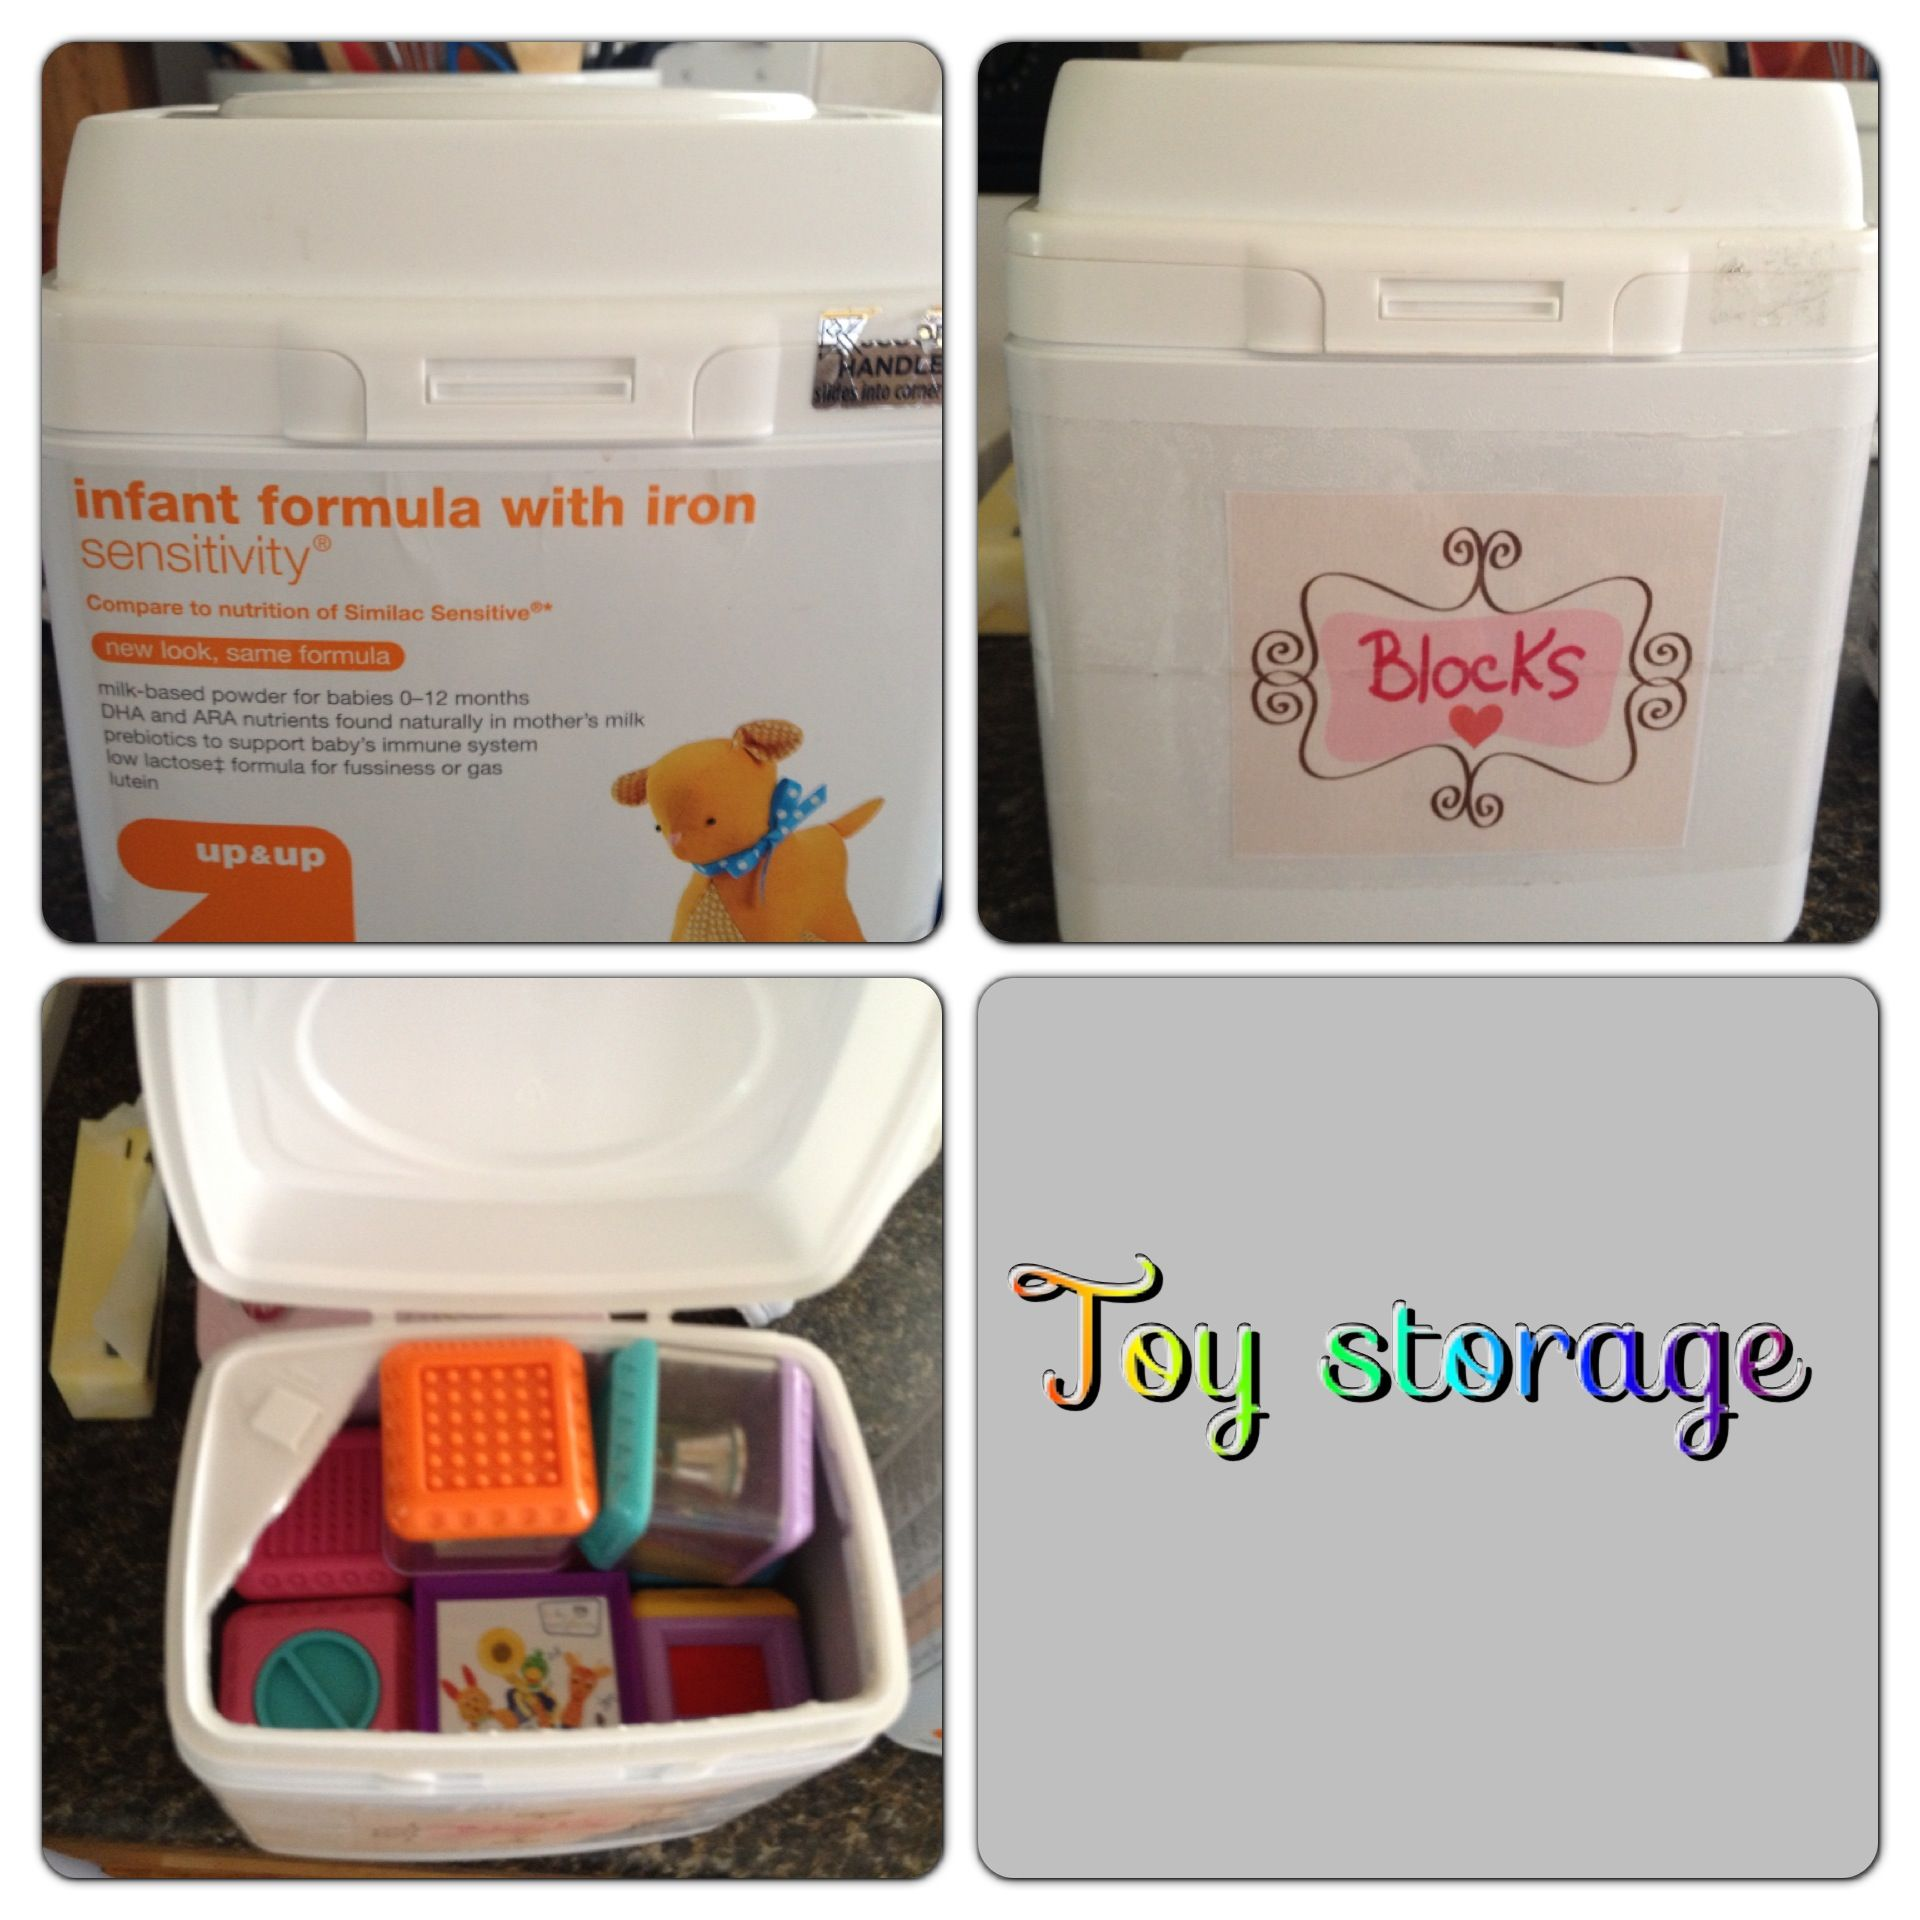 Toy Storage For Ellie S Baby Toys From Old Formula Container Formula Containers Baby Formula Baby Formula Containers